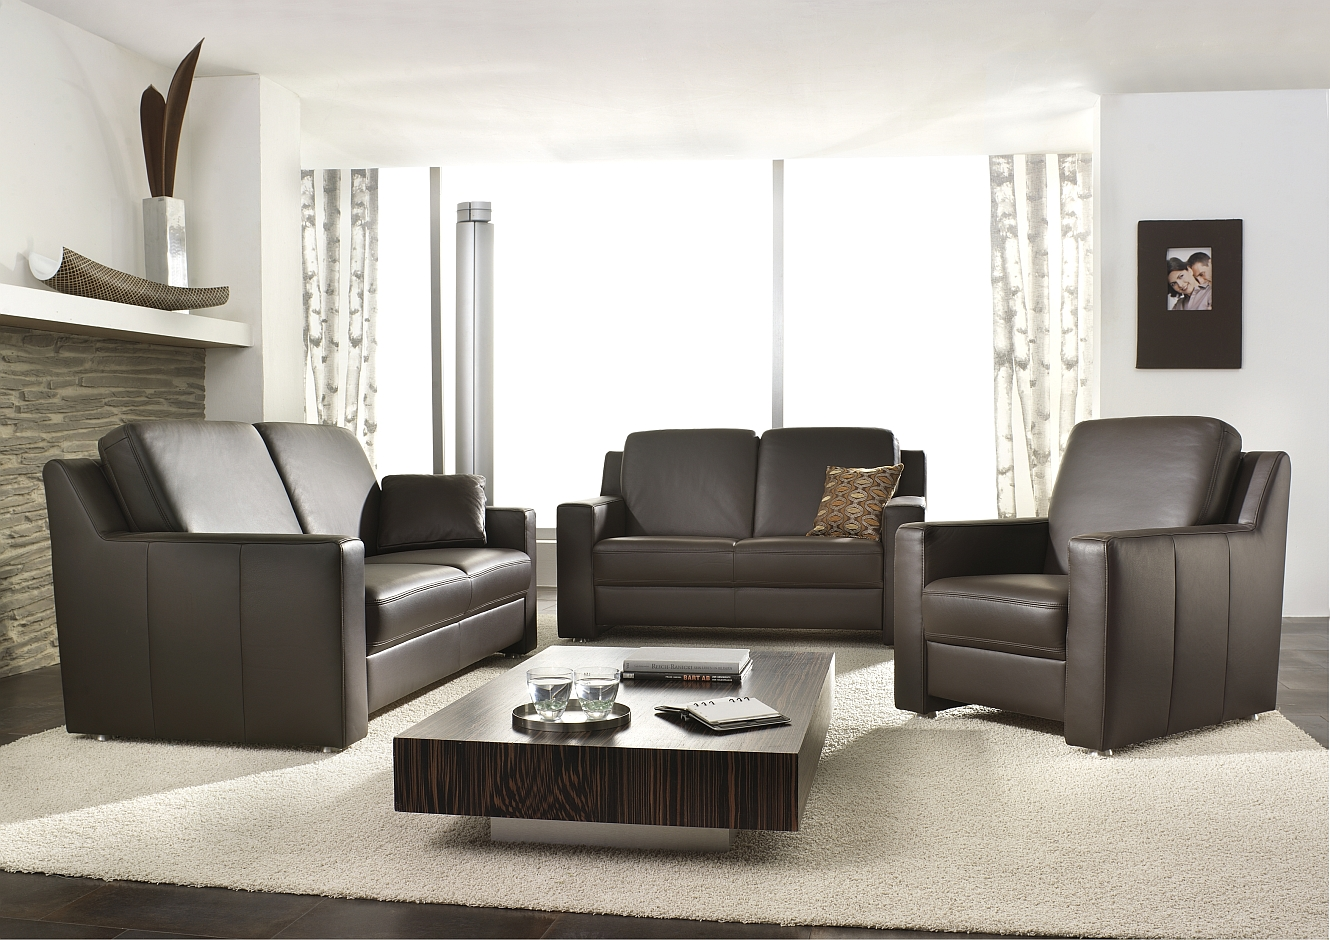 gruber polsterm bel online g nstig. Black Bedroom Furniture Sets. Home Design Ideas